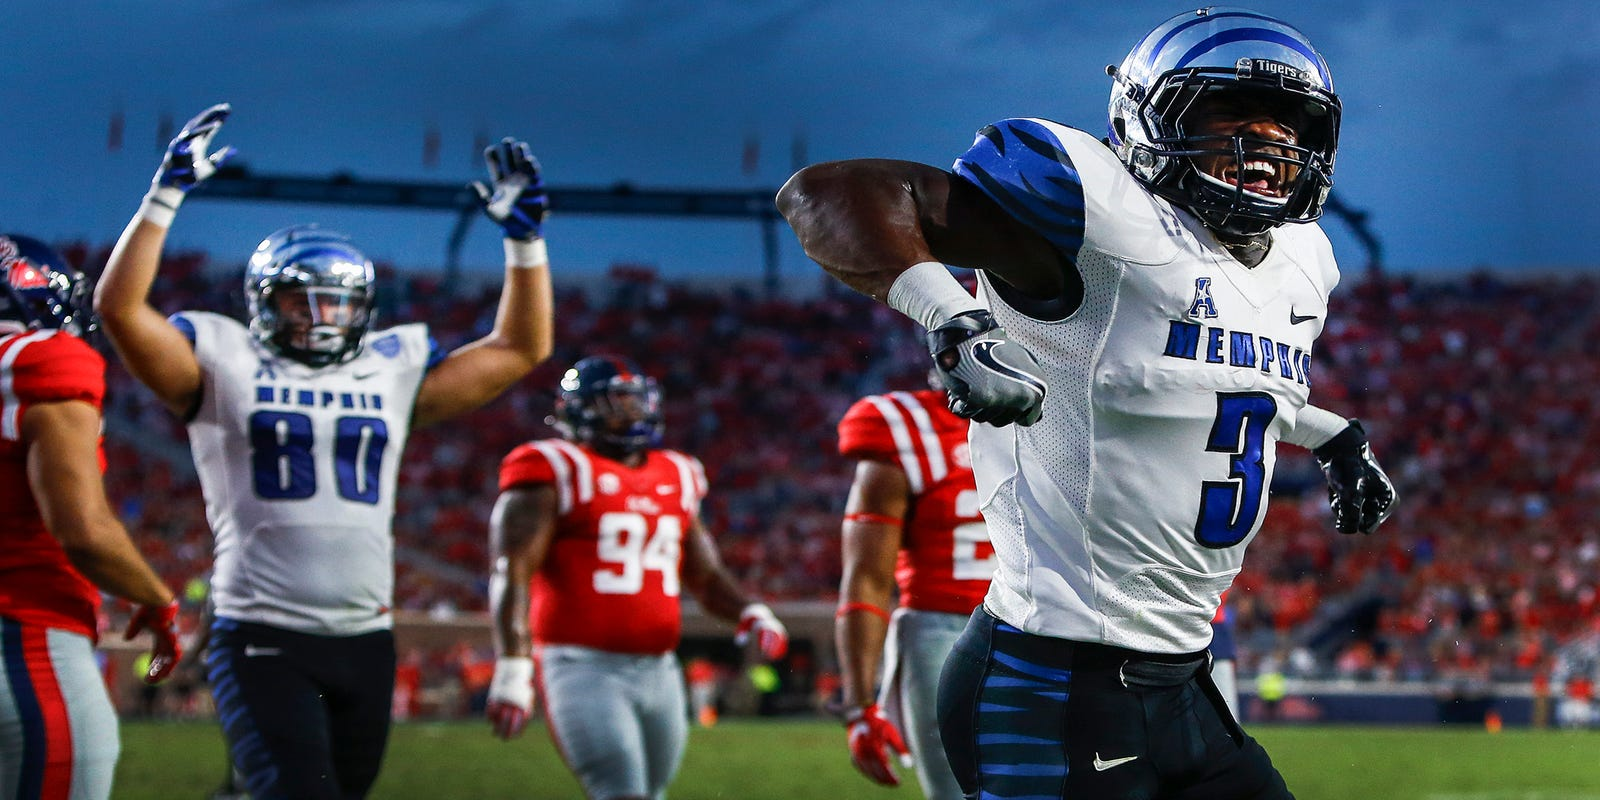 Memphis Ole Miss Football Season Opener Game Means More For